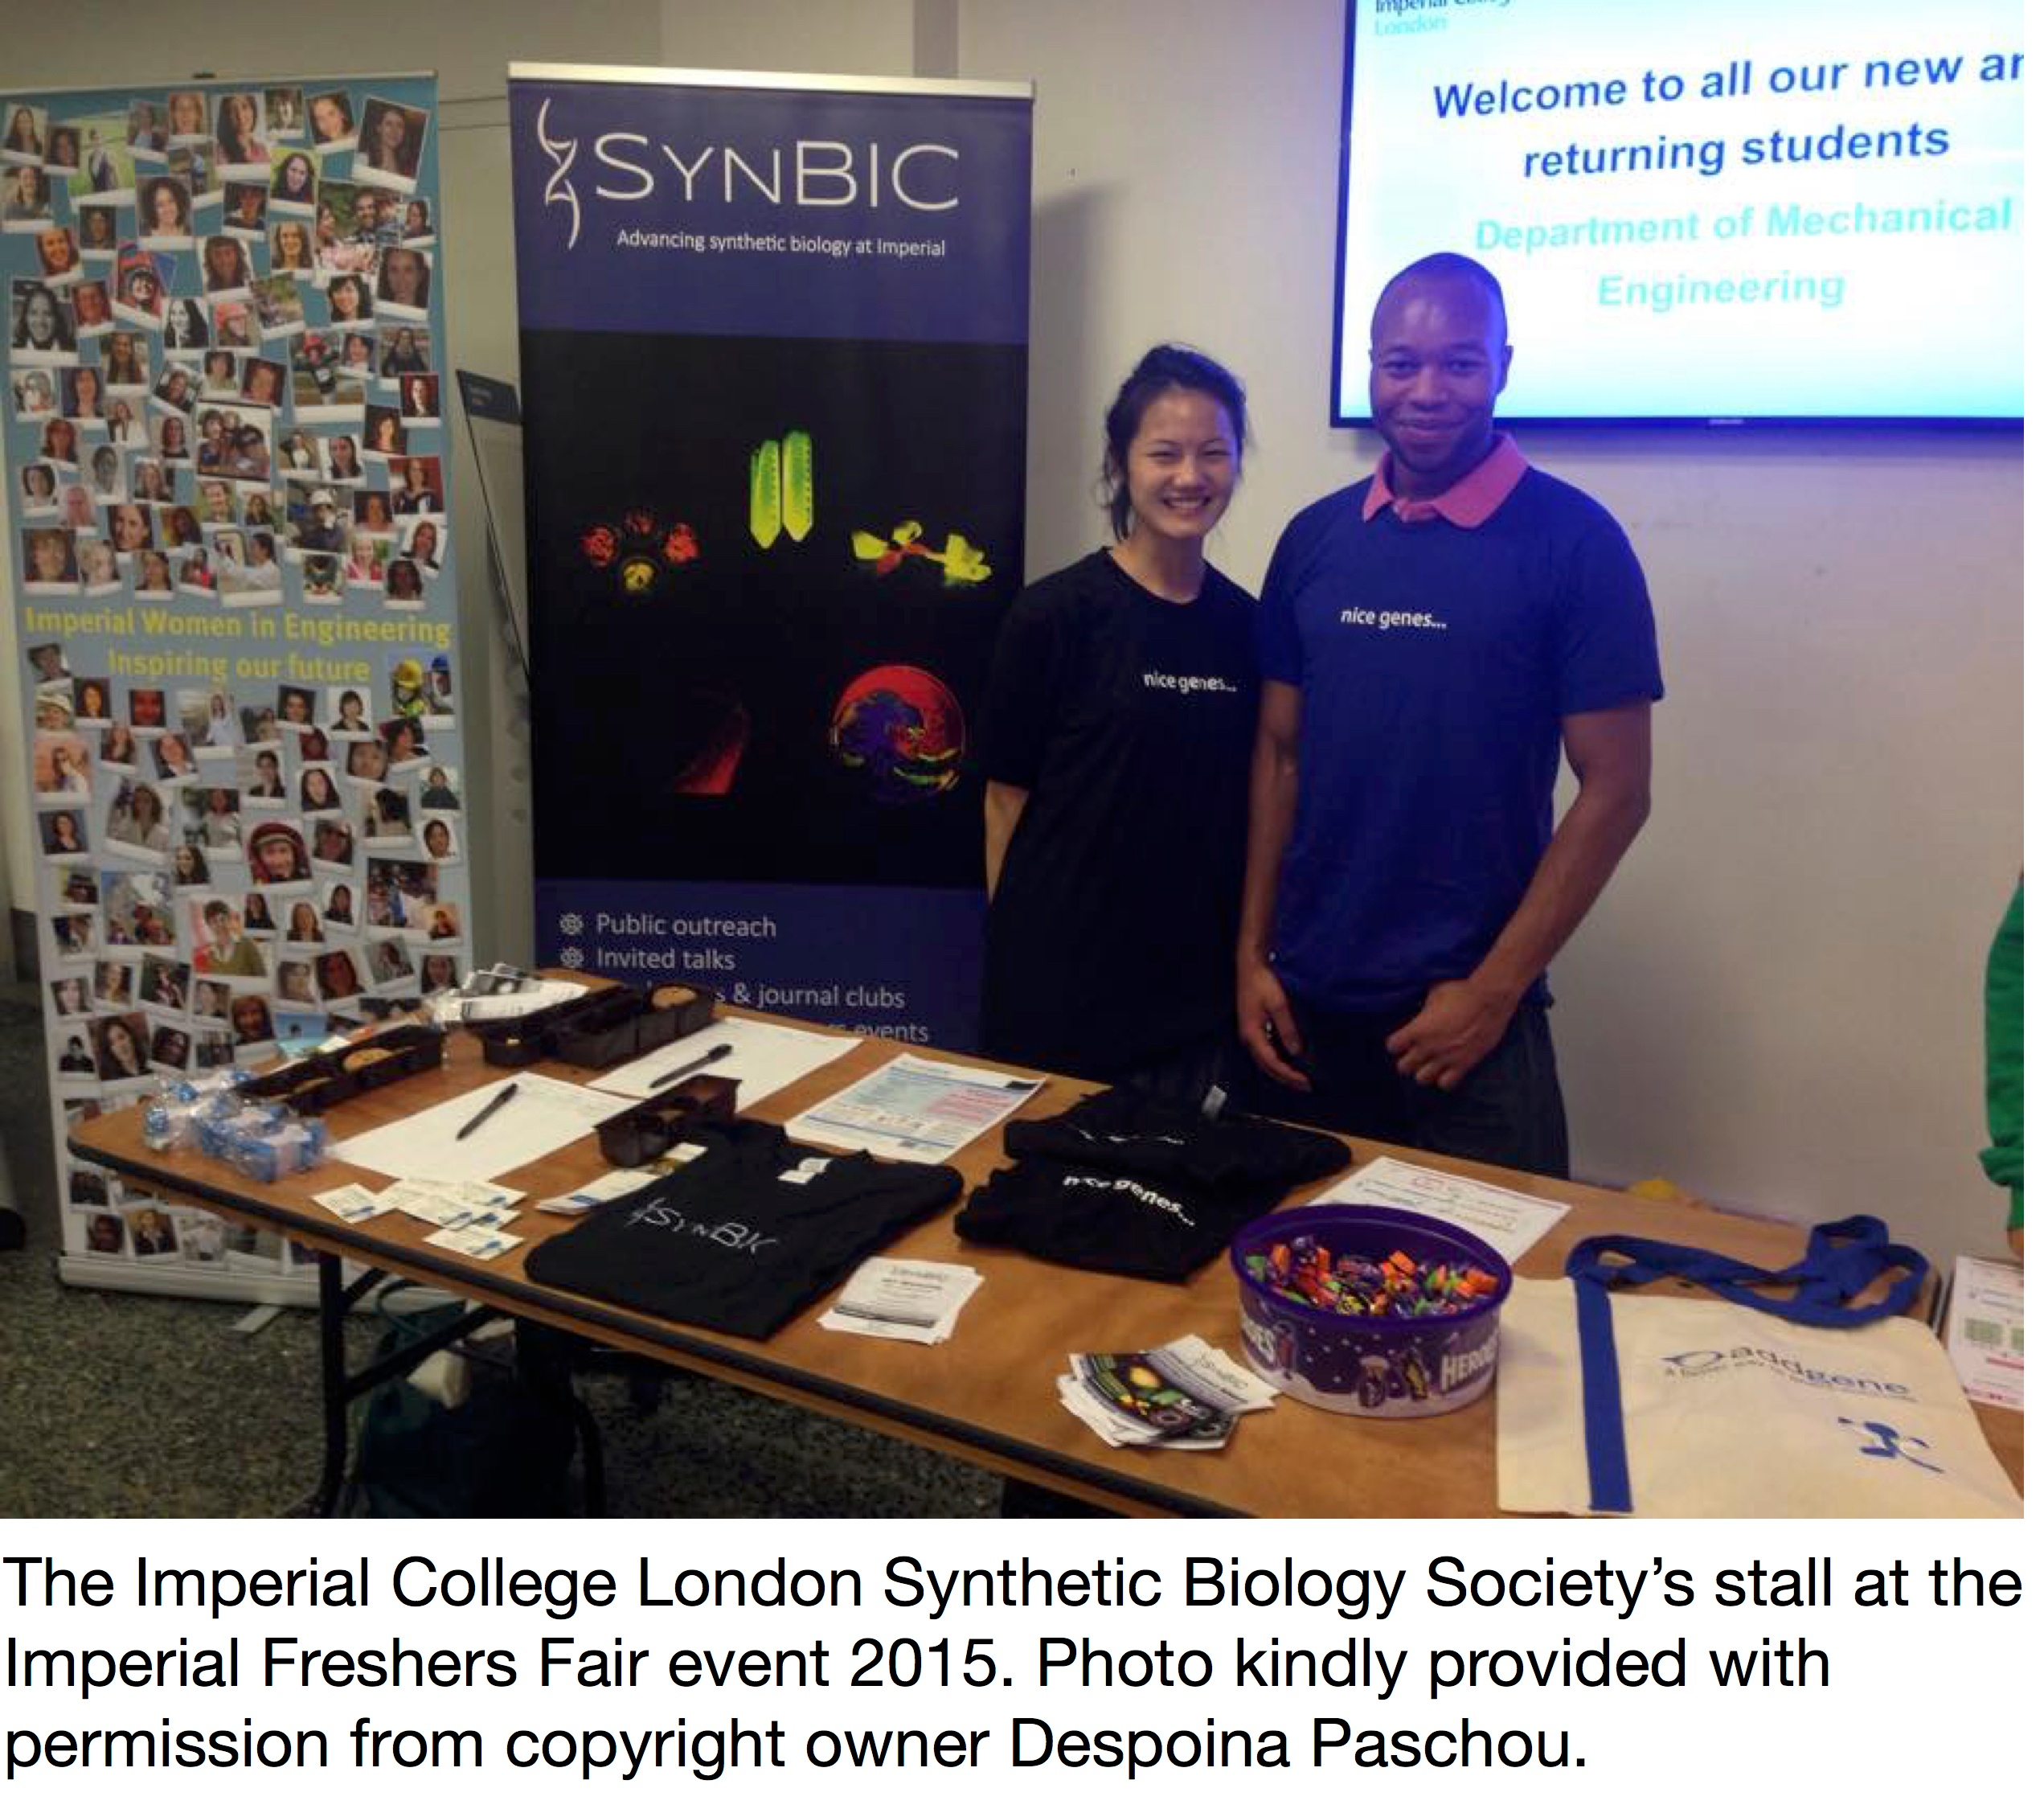 Imperial College London Synthetic Biology Society at a Freshers Fair